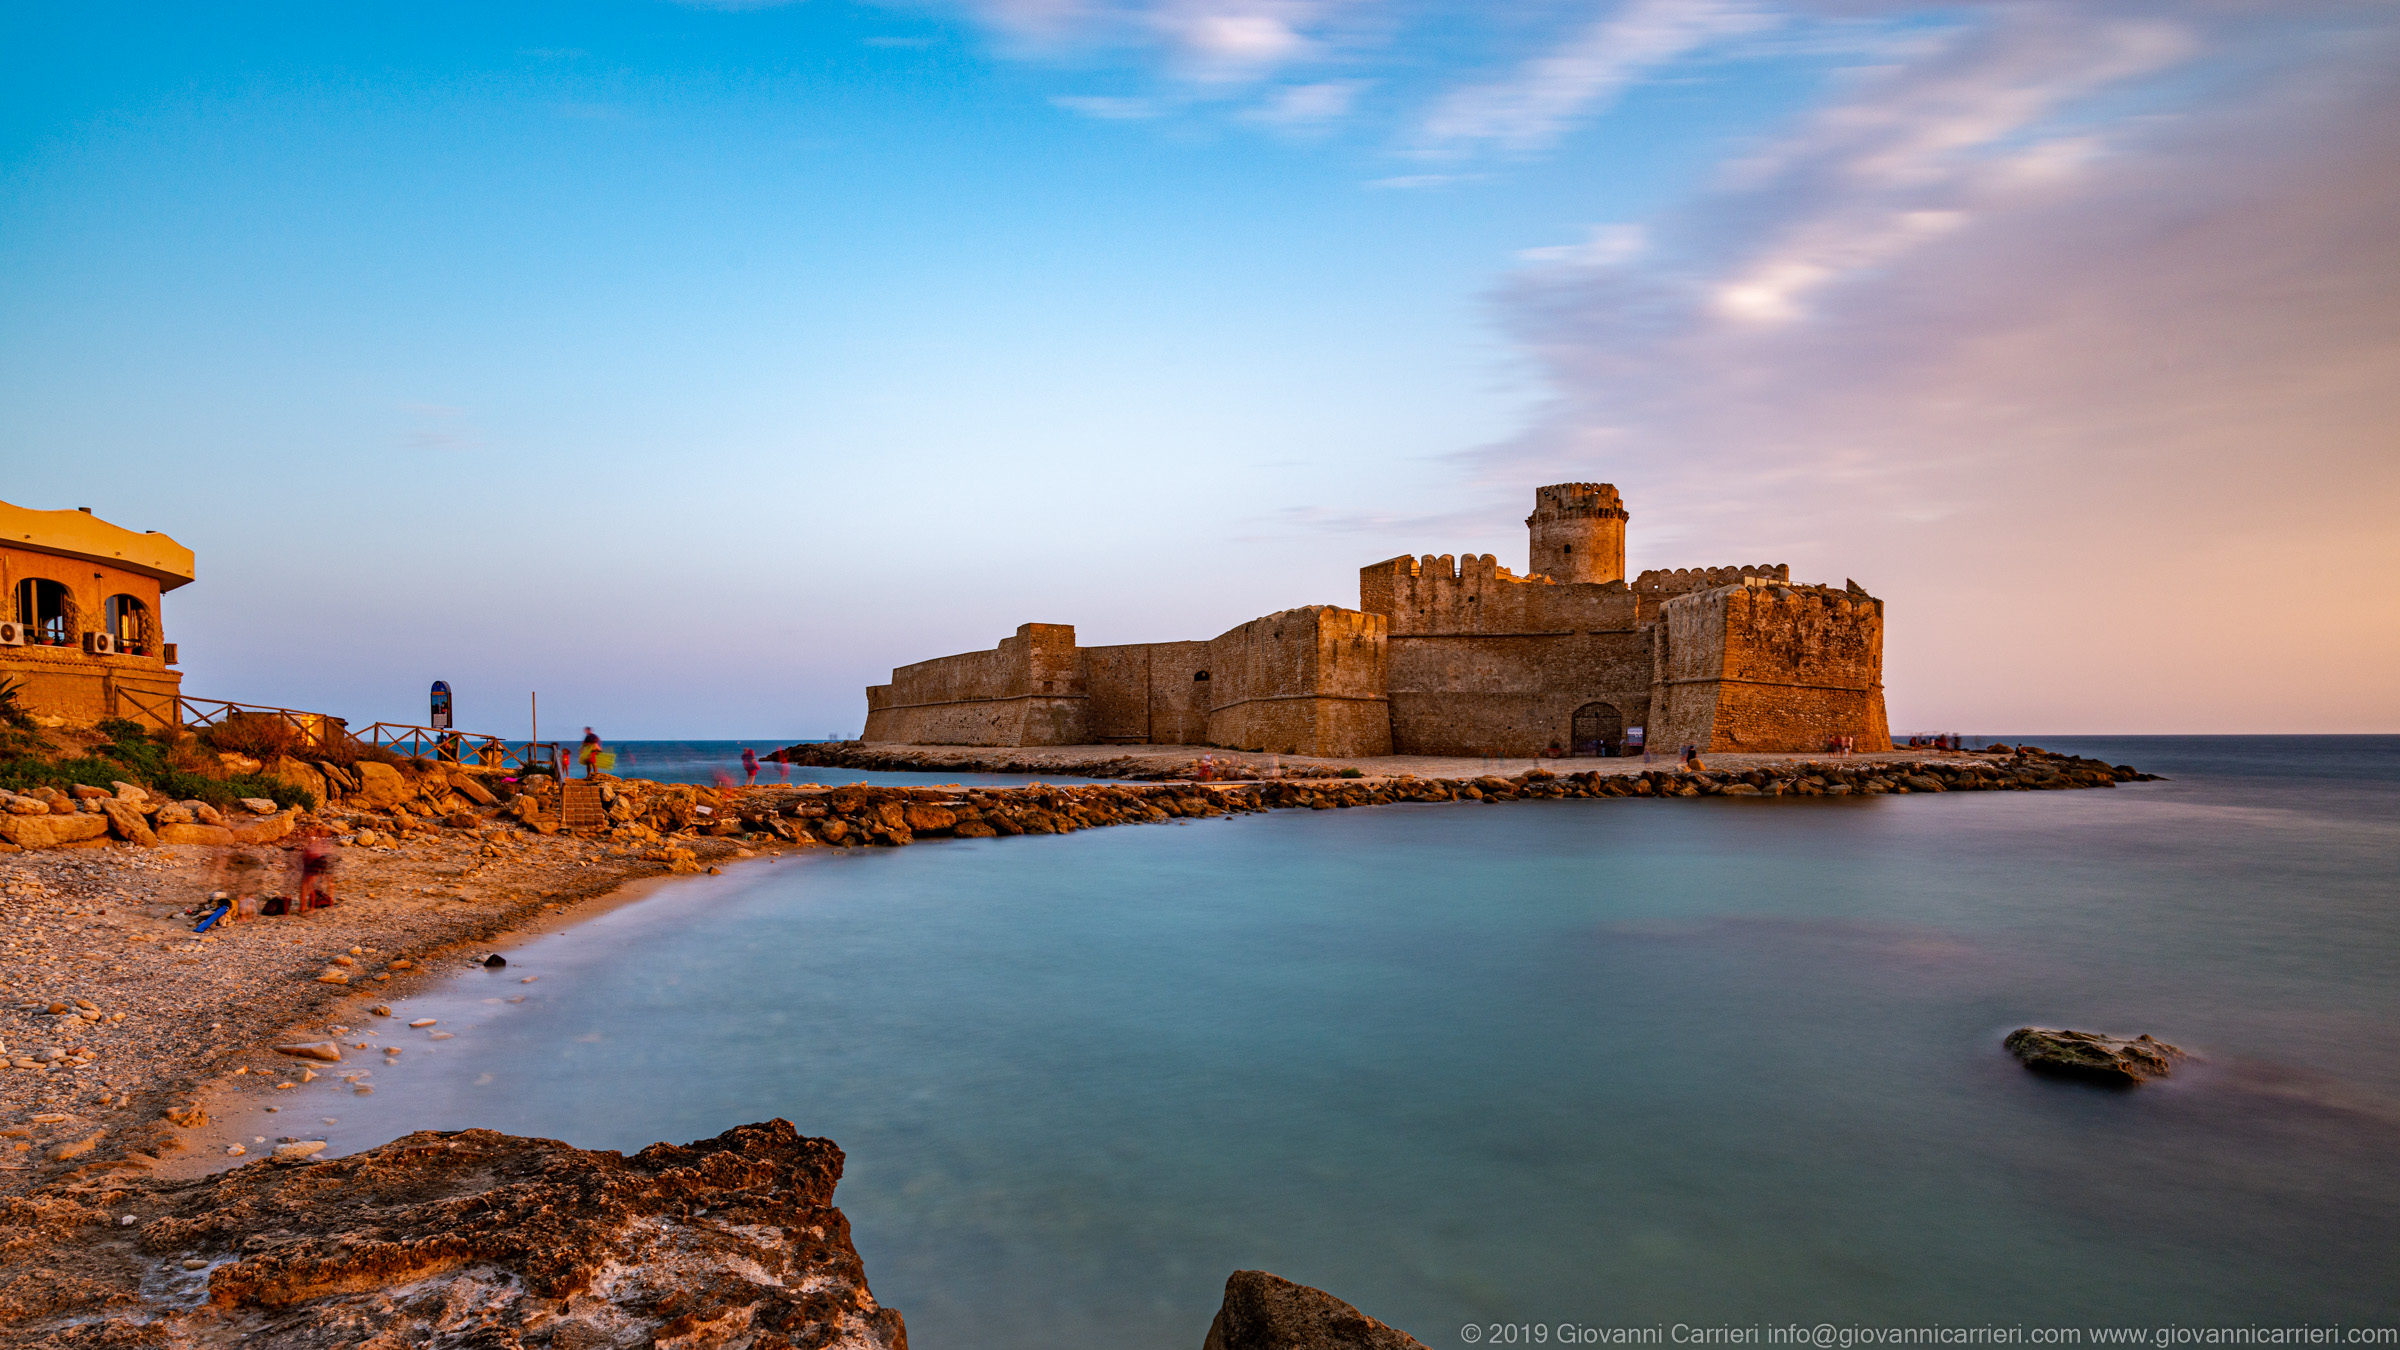 The beach in front of the Aragonese Castle of Le Castella